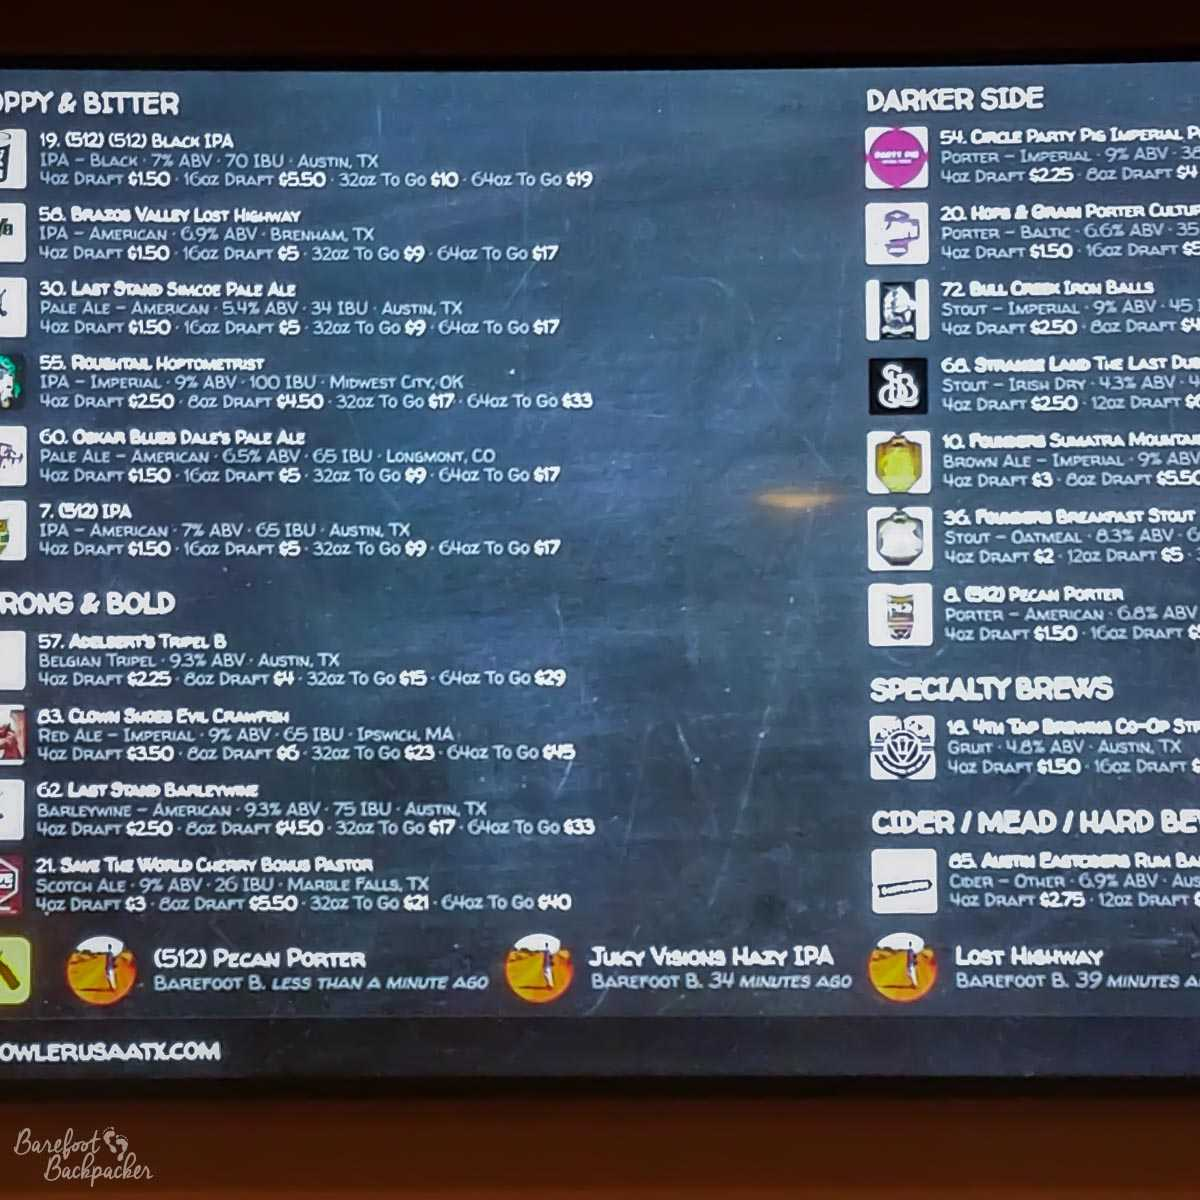 List of beers at Growler USA, Austin TX